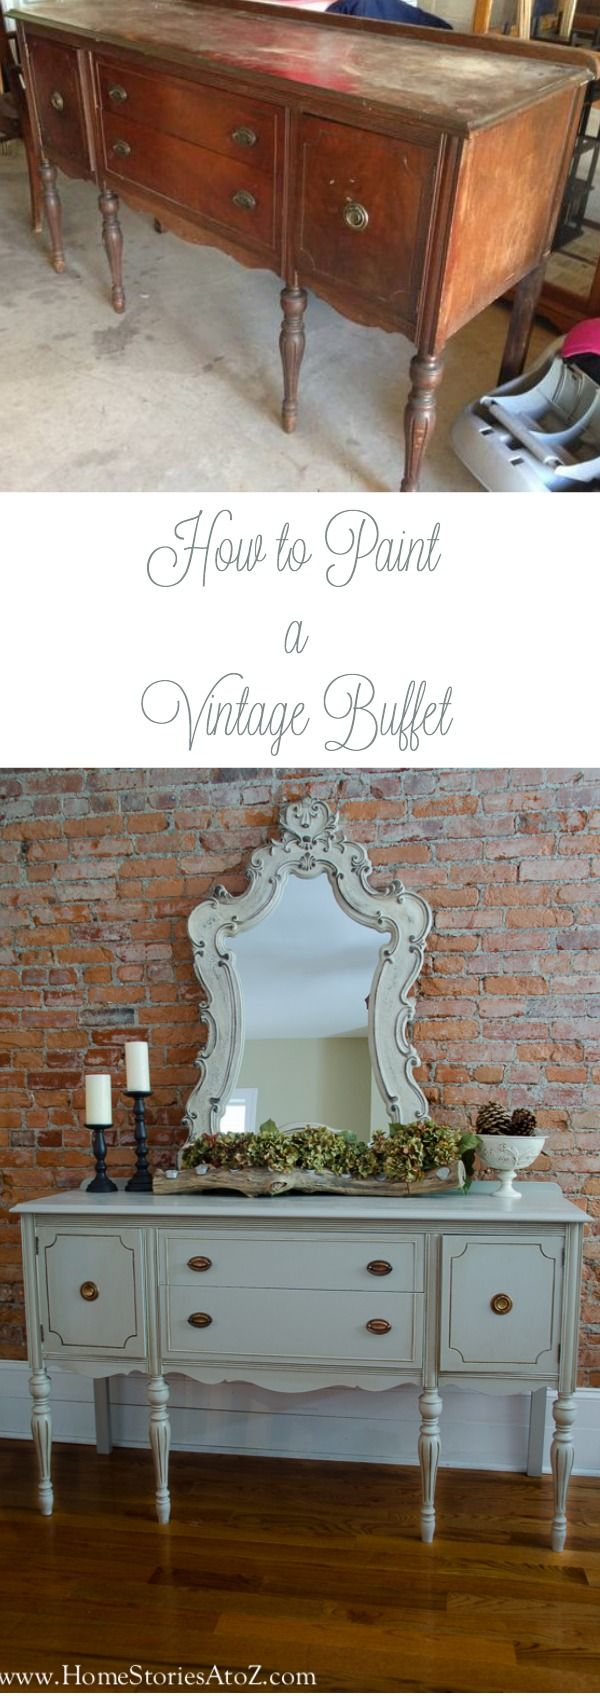 How to paint a vintage buffet.